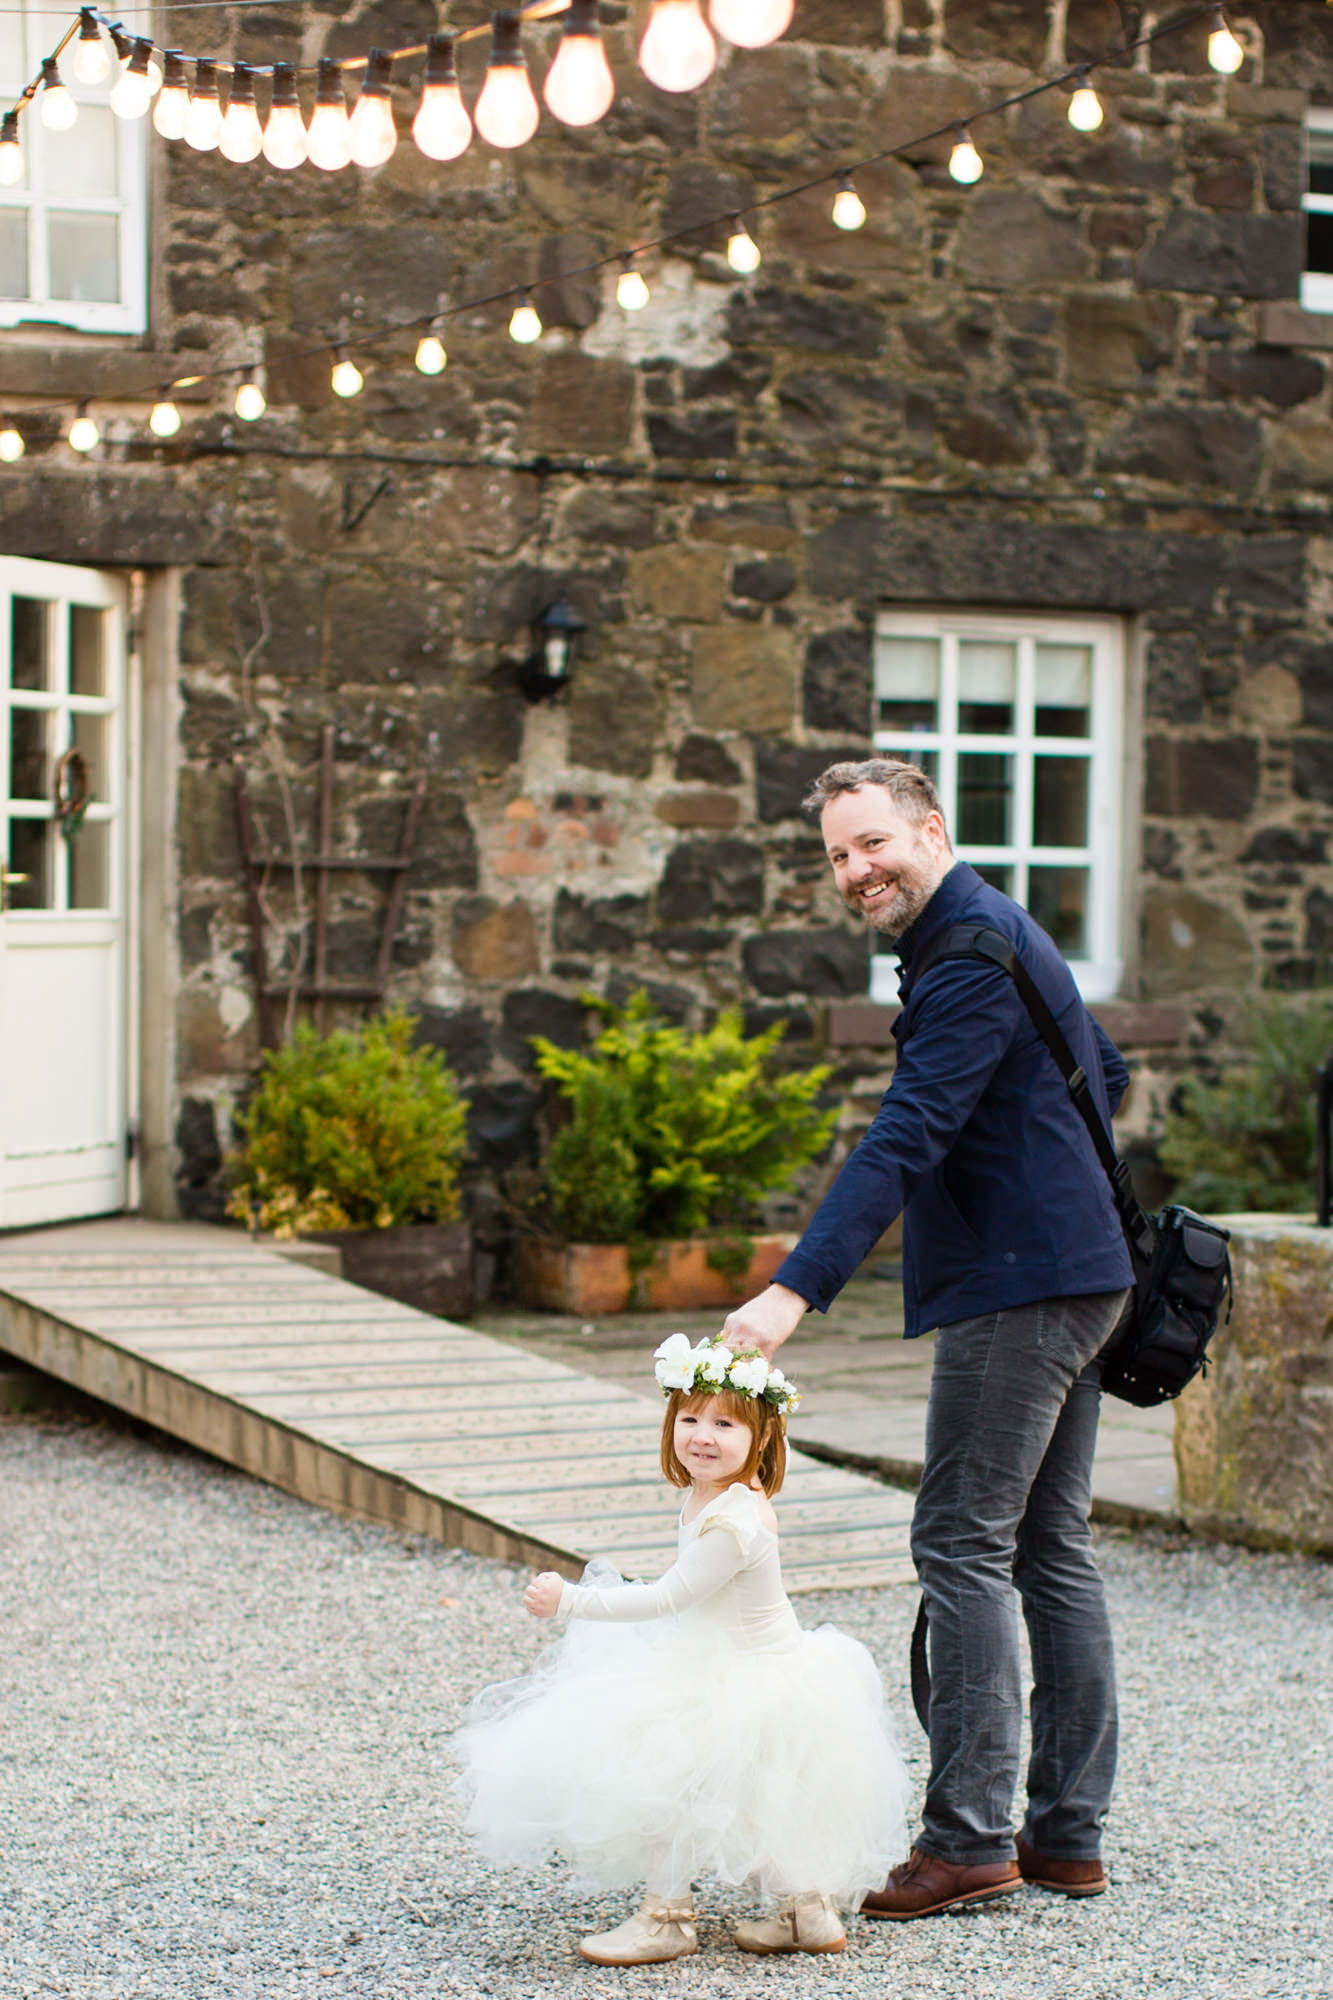 Adorable flower girl with tulle dress holds hands with daddy photo by  La Vie